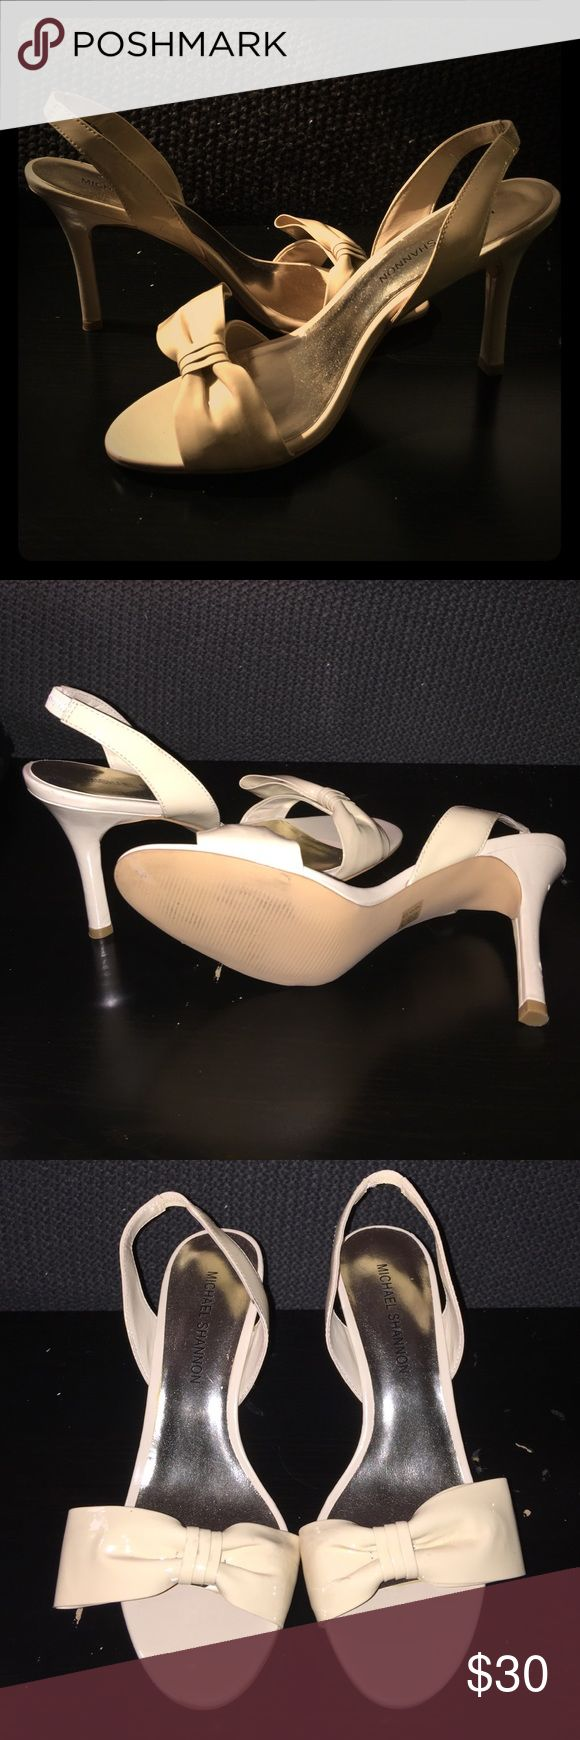 Beige Strappy High Heels. Beige patent leather shoe. Sling backs with a bow shaped front. Brand new, never worn. Michael Shannon Shoes